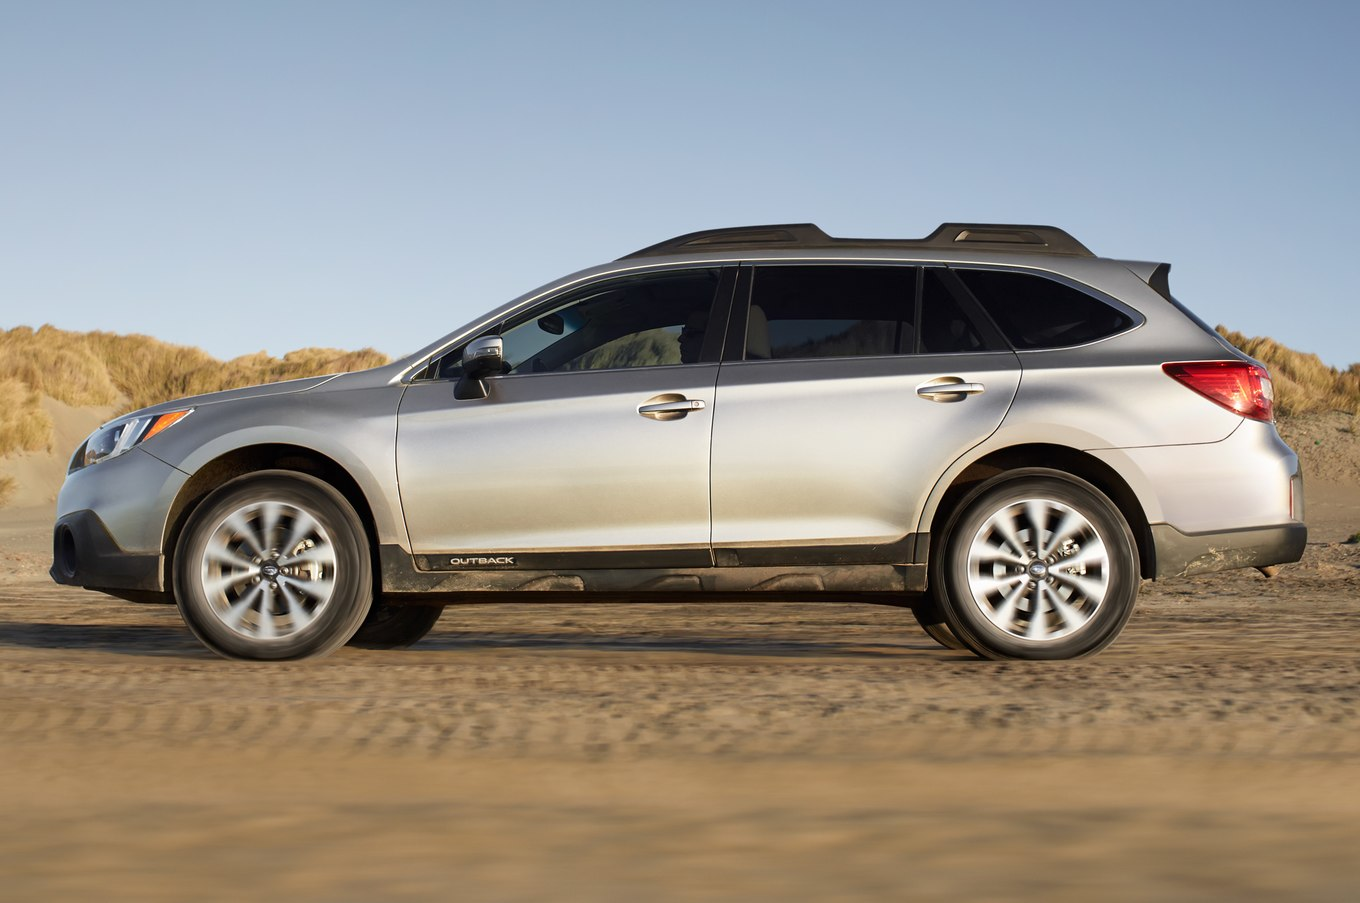 Subaru outback photo - 2